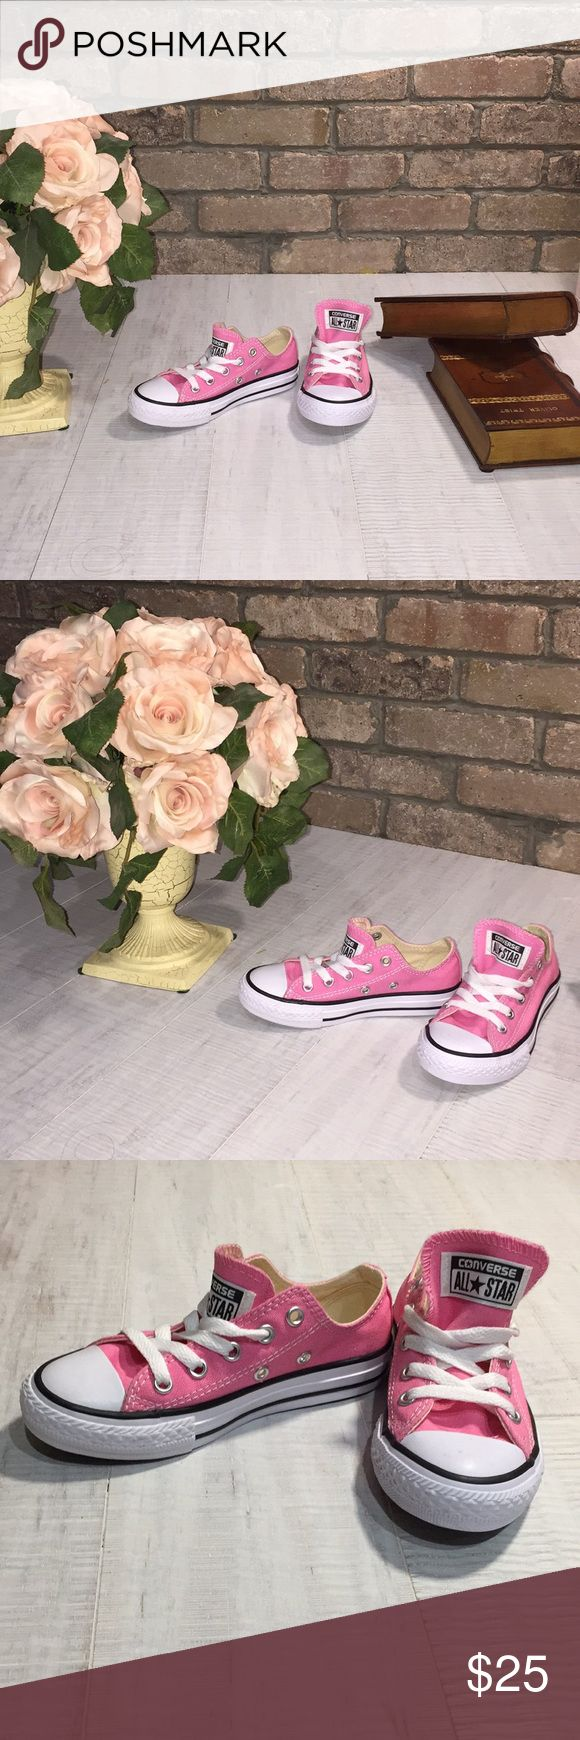 💝 Converse Chuck Taylor All Star Lo Sneaker 💝 New without box beautiful Converse for kids size 11  P2 Converse Shoes Sneakers